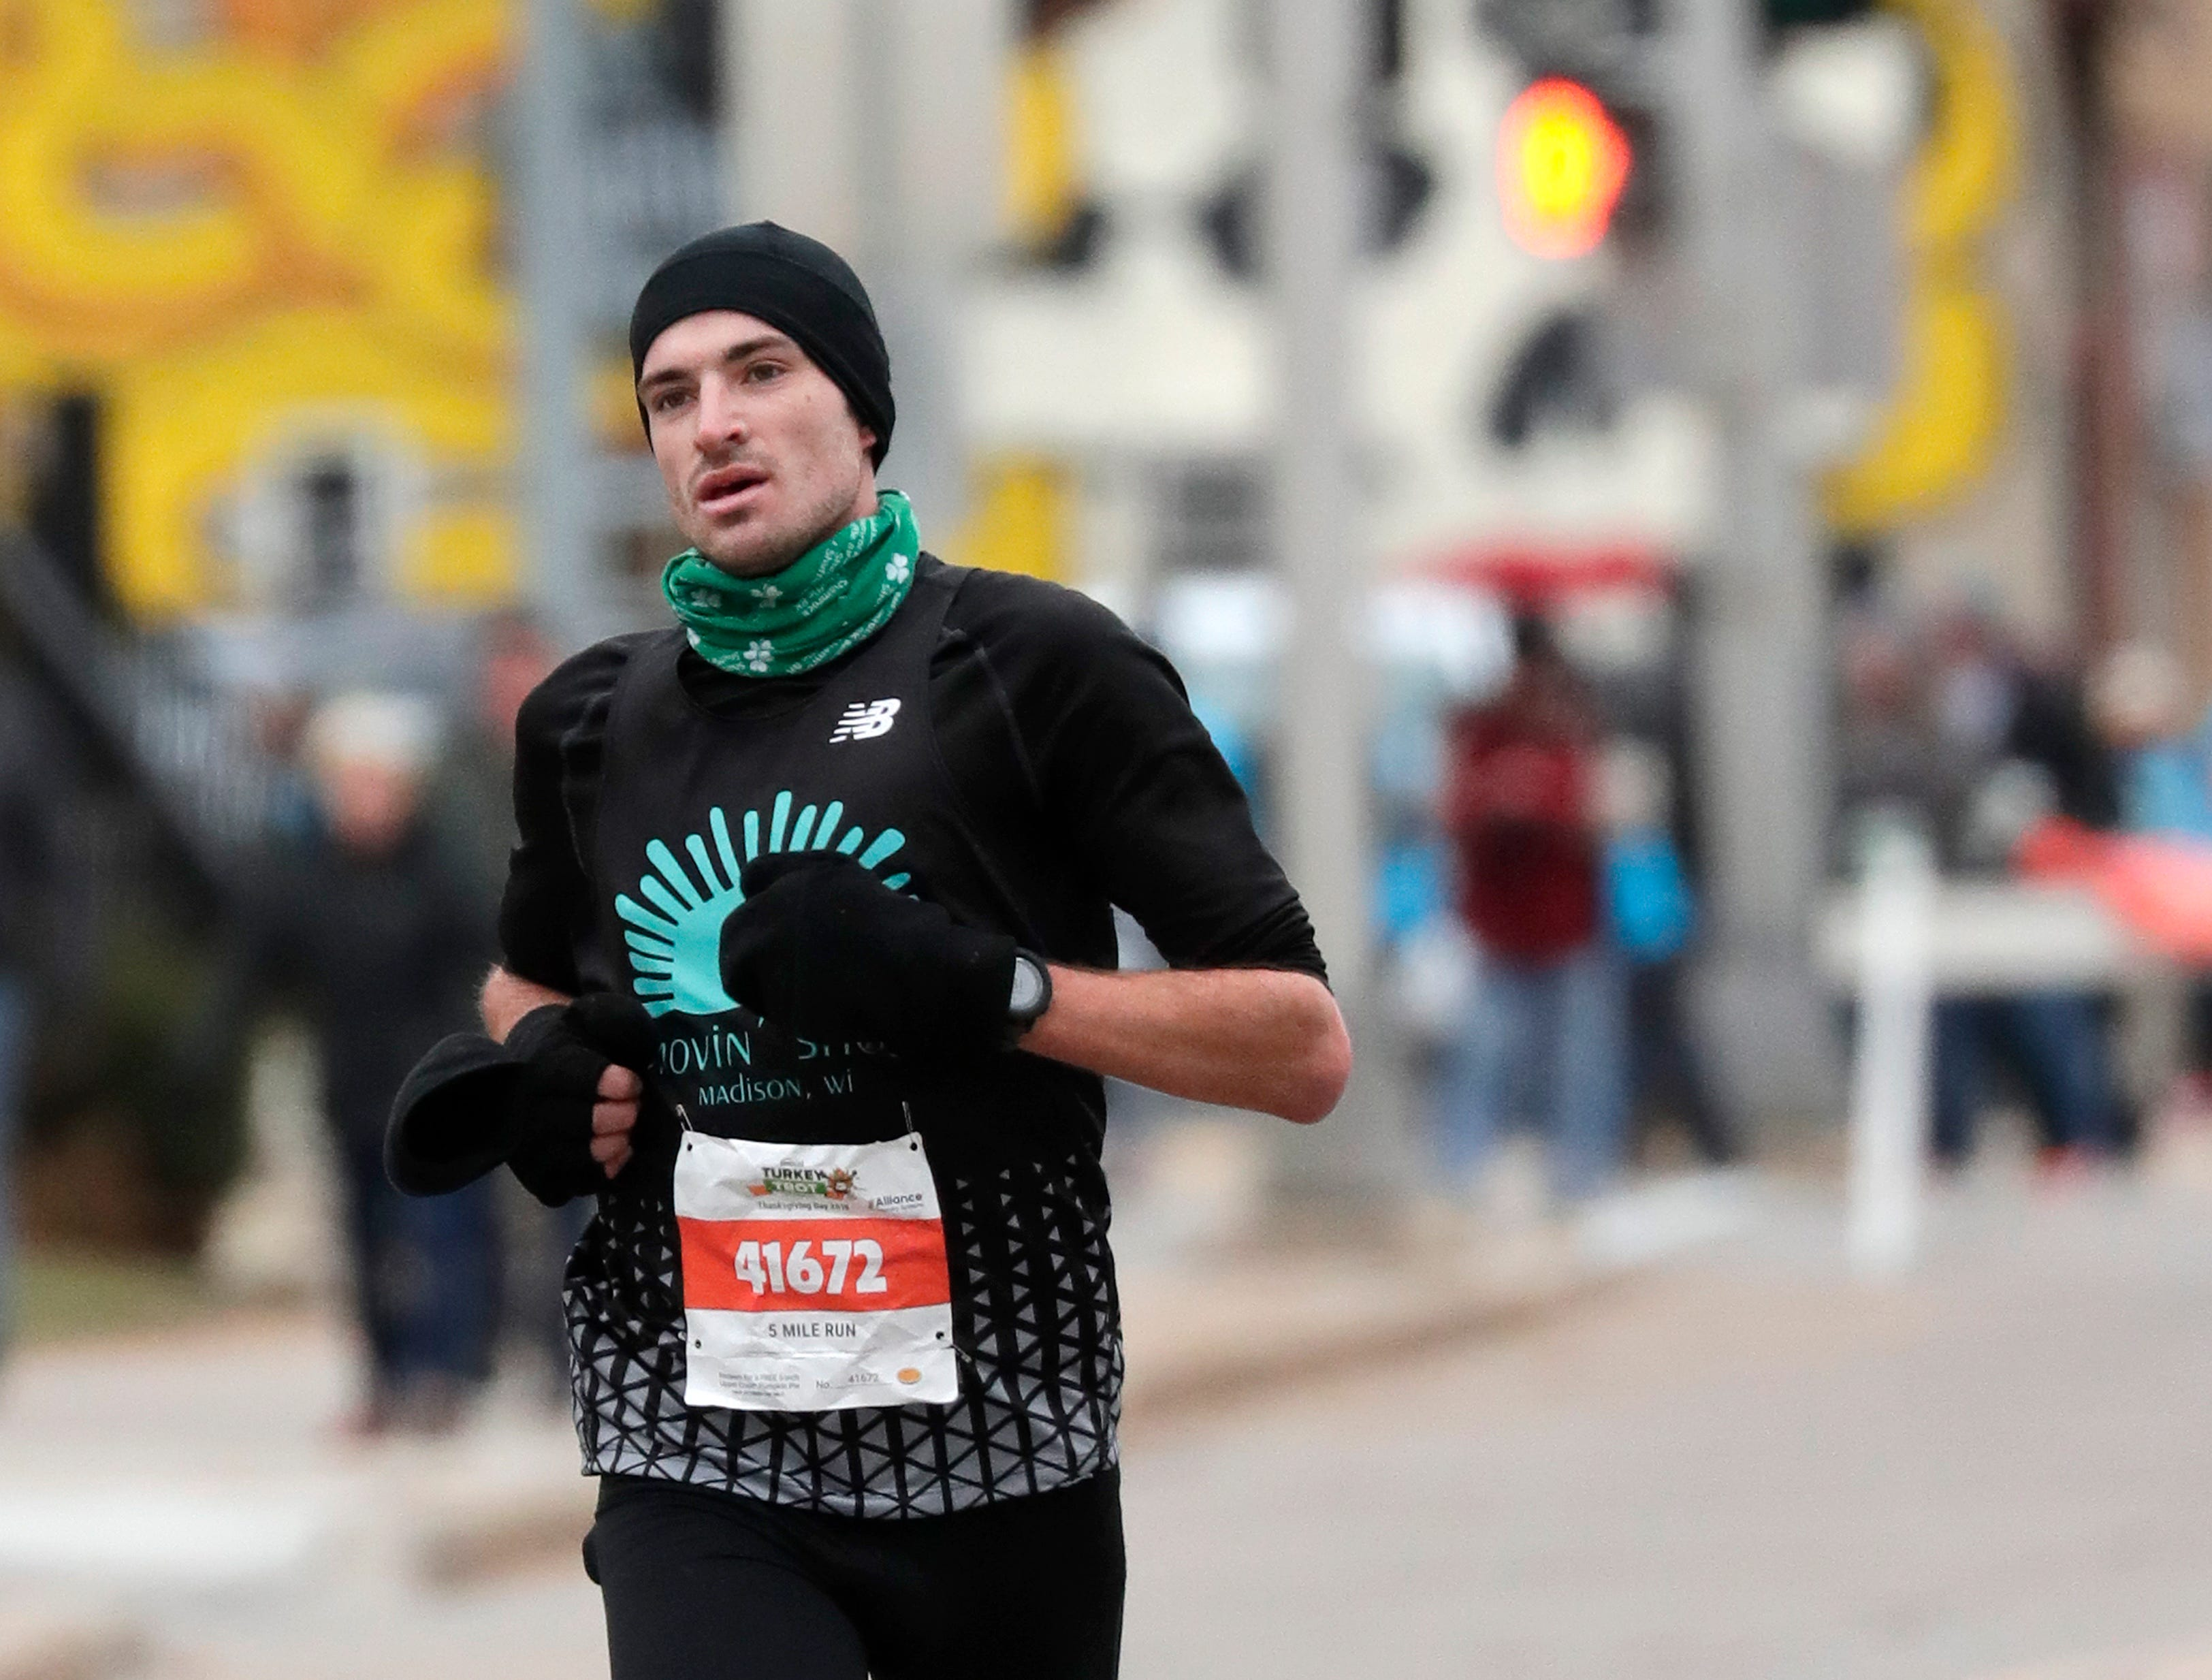 Alexander Rink of Chilton wins the 11th Annual Festival Foods Turkey Trot Thursday, November 22, 2018, in Appleton, Wis. 